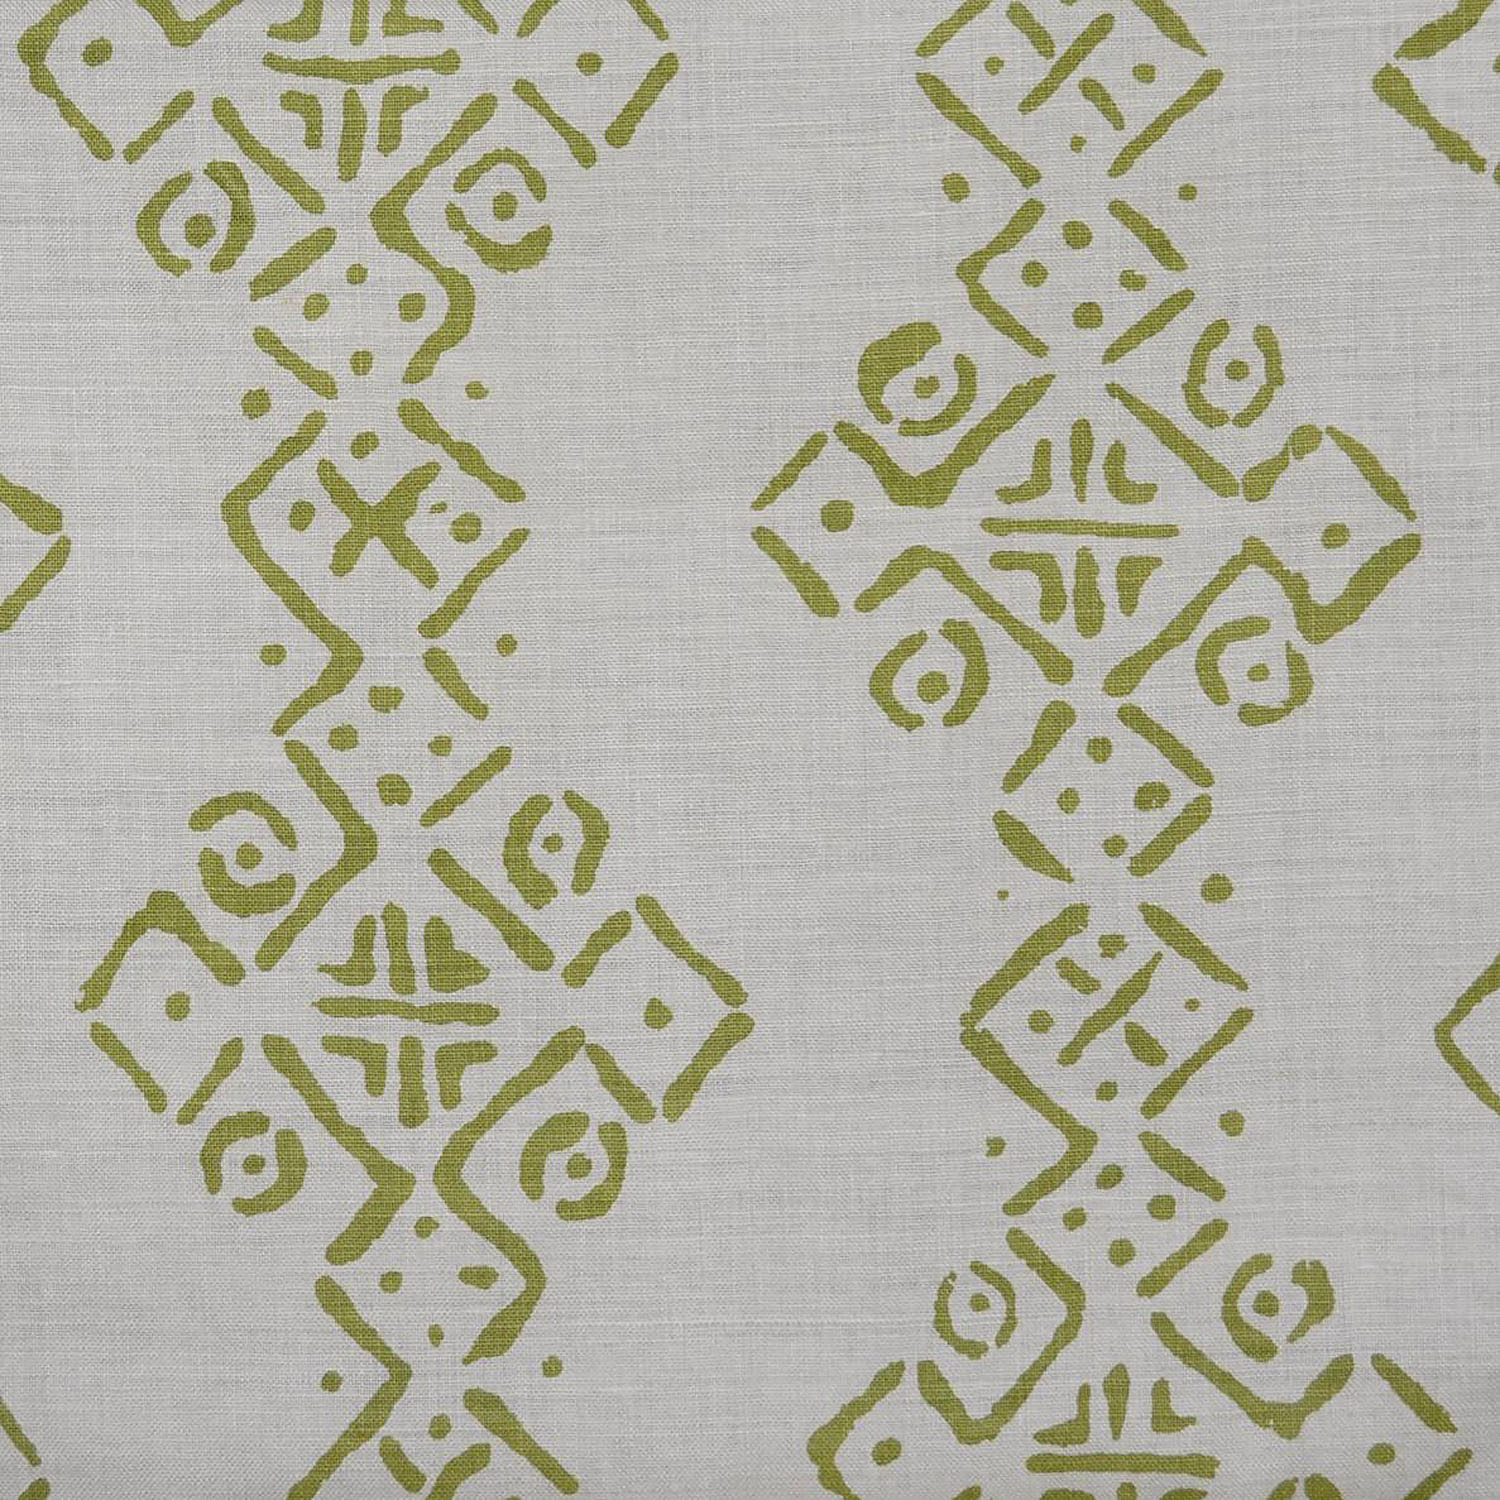 <p><strong>MADISON</strong>7540-00<a href=/custom-print-collection/mali-7540-00>More →</a></p>